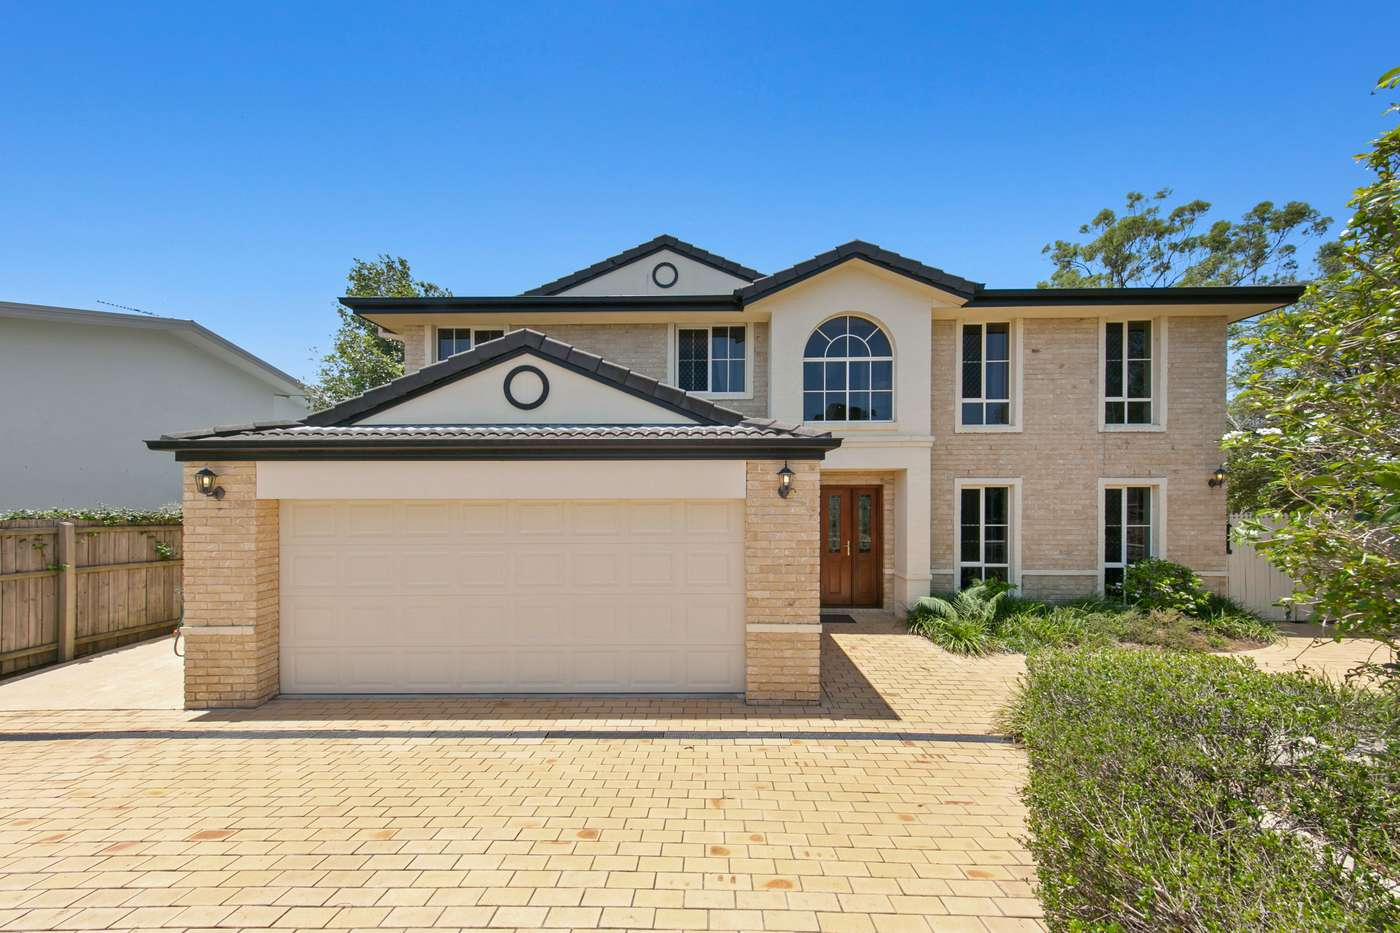 Main view of Homely house listing, 23 Russell Street, Everton Park, QLD 4053